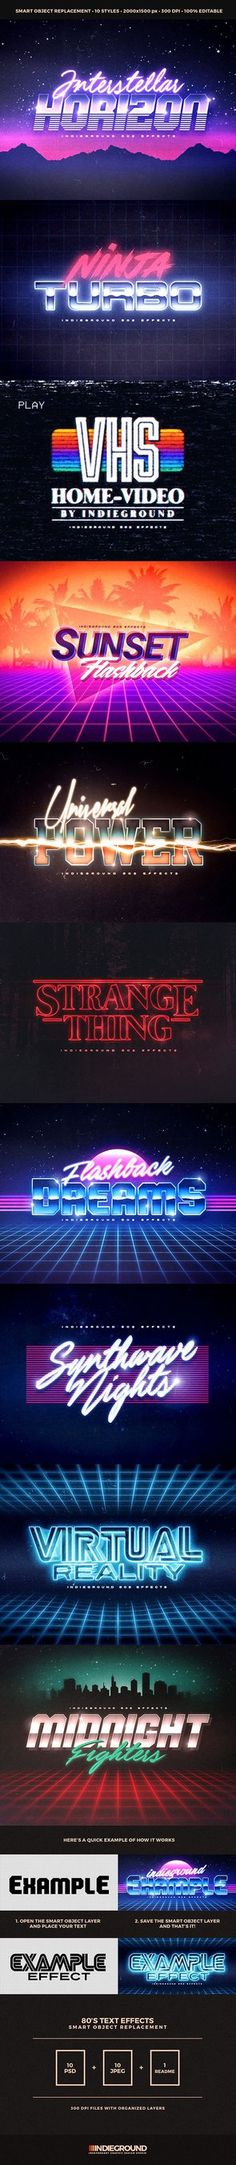 "DOWNLOAD:   goo.gl/rkiua480's Retro Text Effects""Simple & 3d Retro Effect"" – This graphic resource gives you a quick & easy possibility to apply an high qu..."